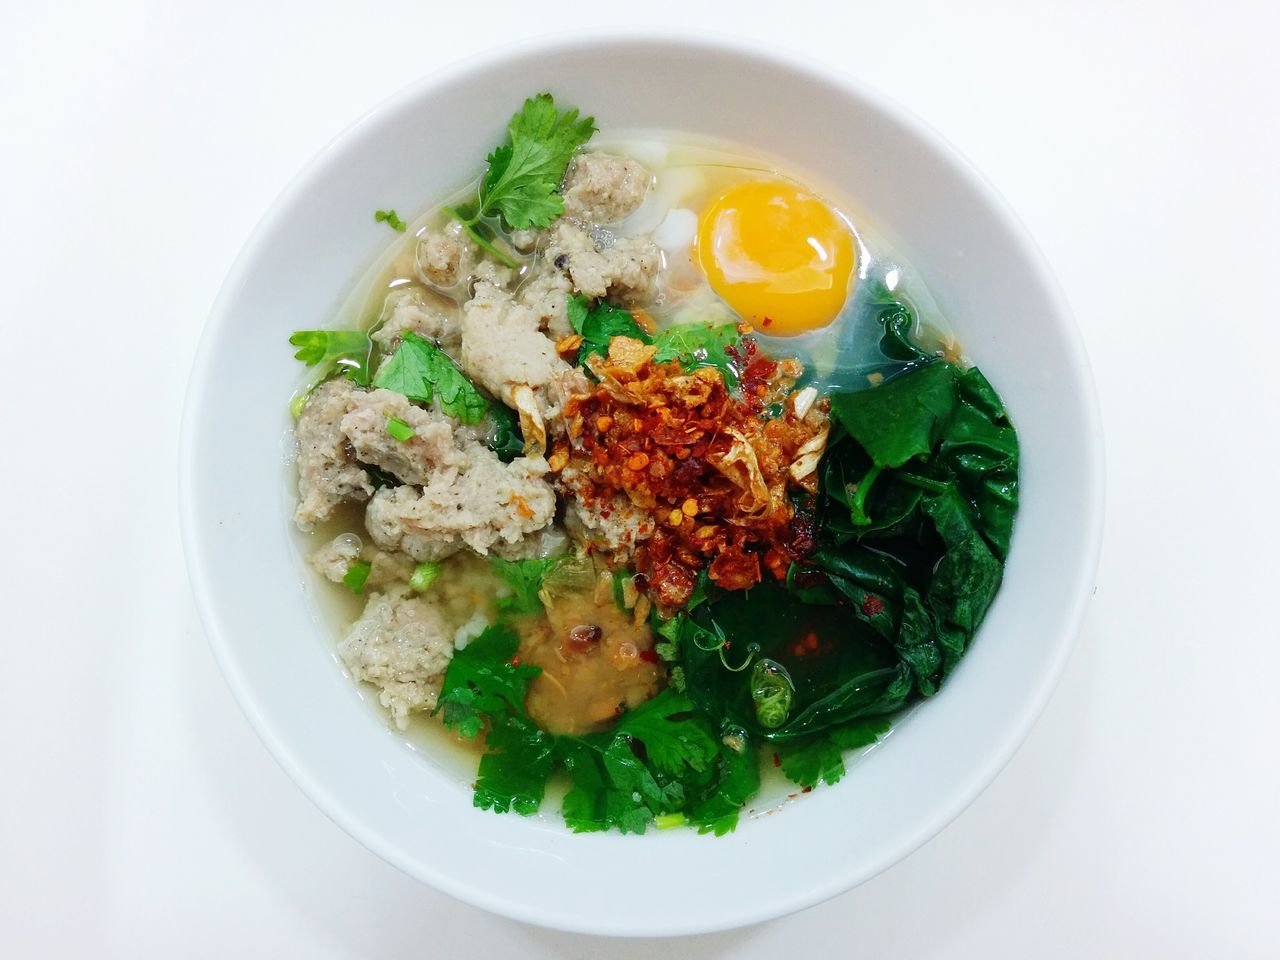 Thai Porridge Soft Boiled Rice with Raw Egg Breakfast Delicious